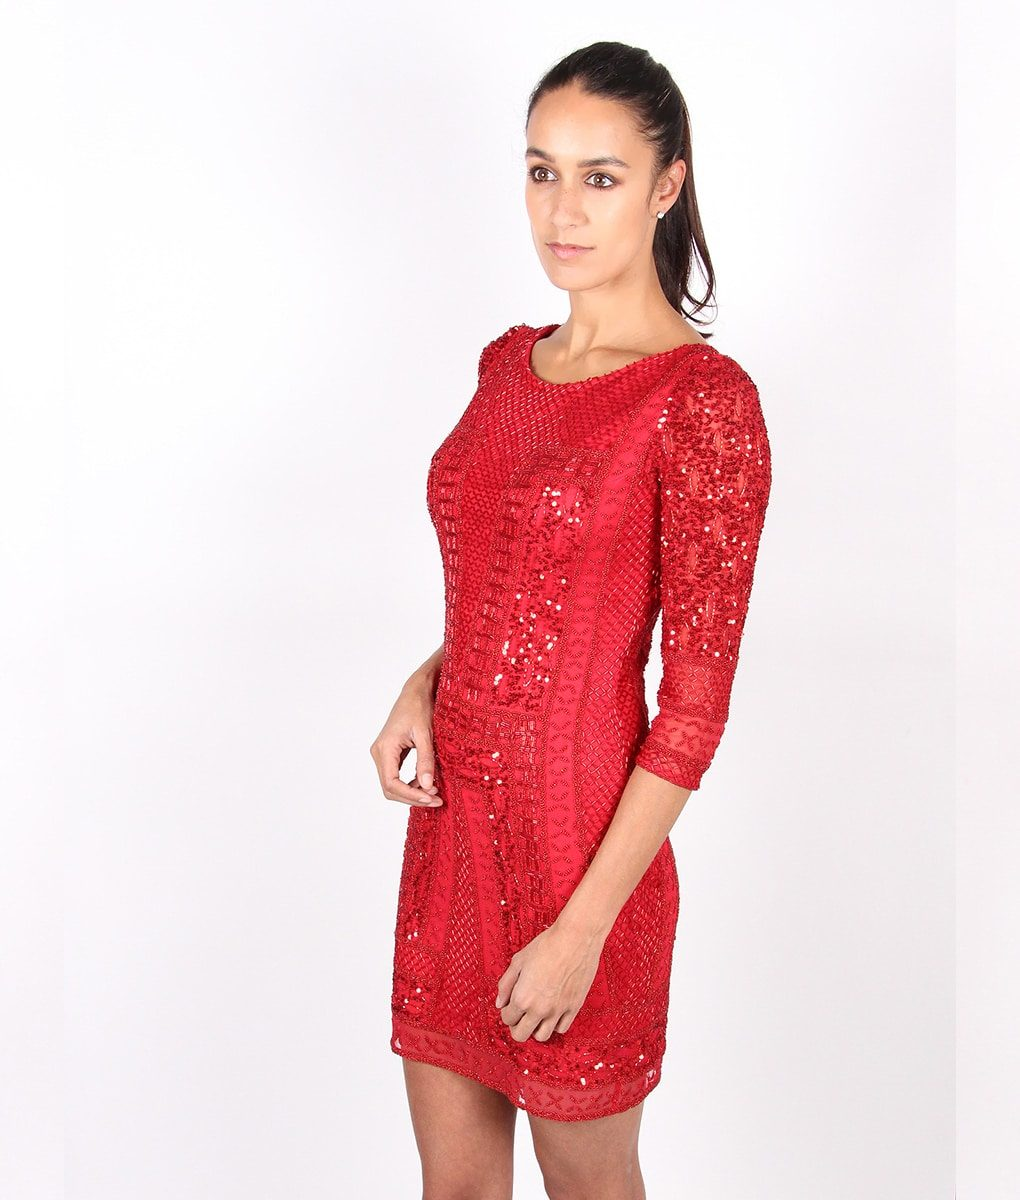 Scala Long Sleeved Red Sequin Dress - Alila